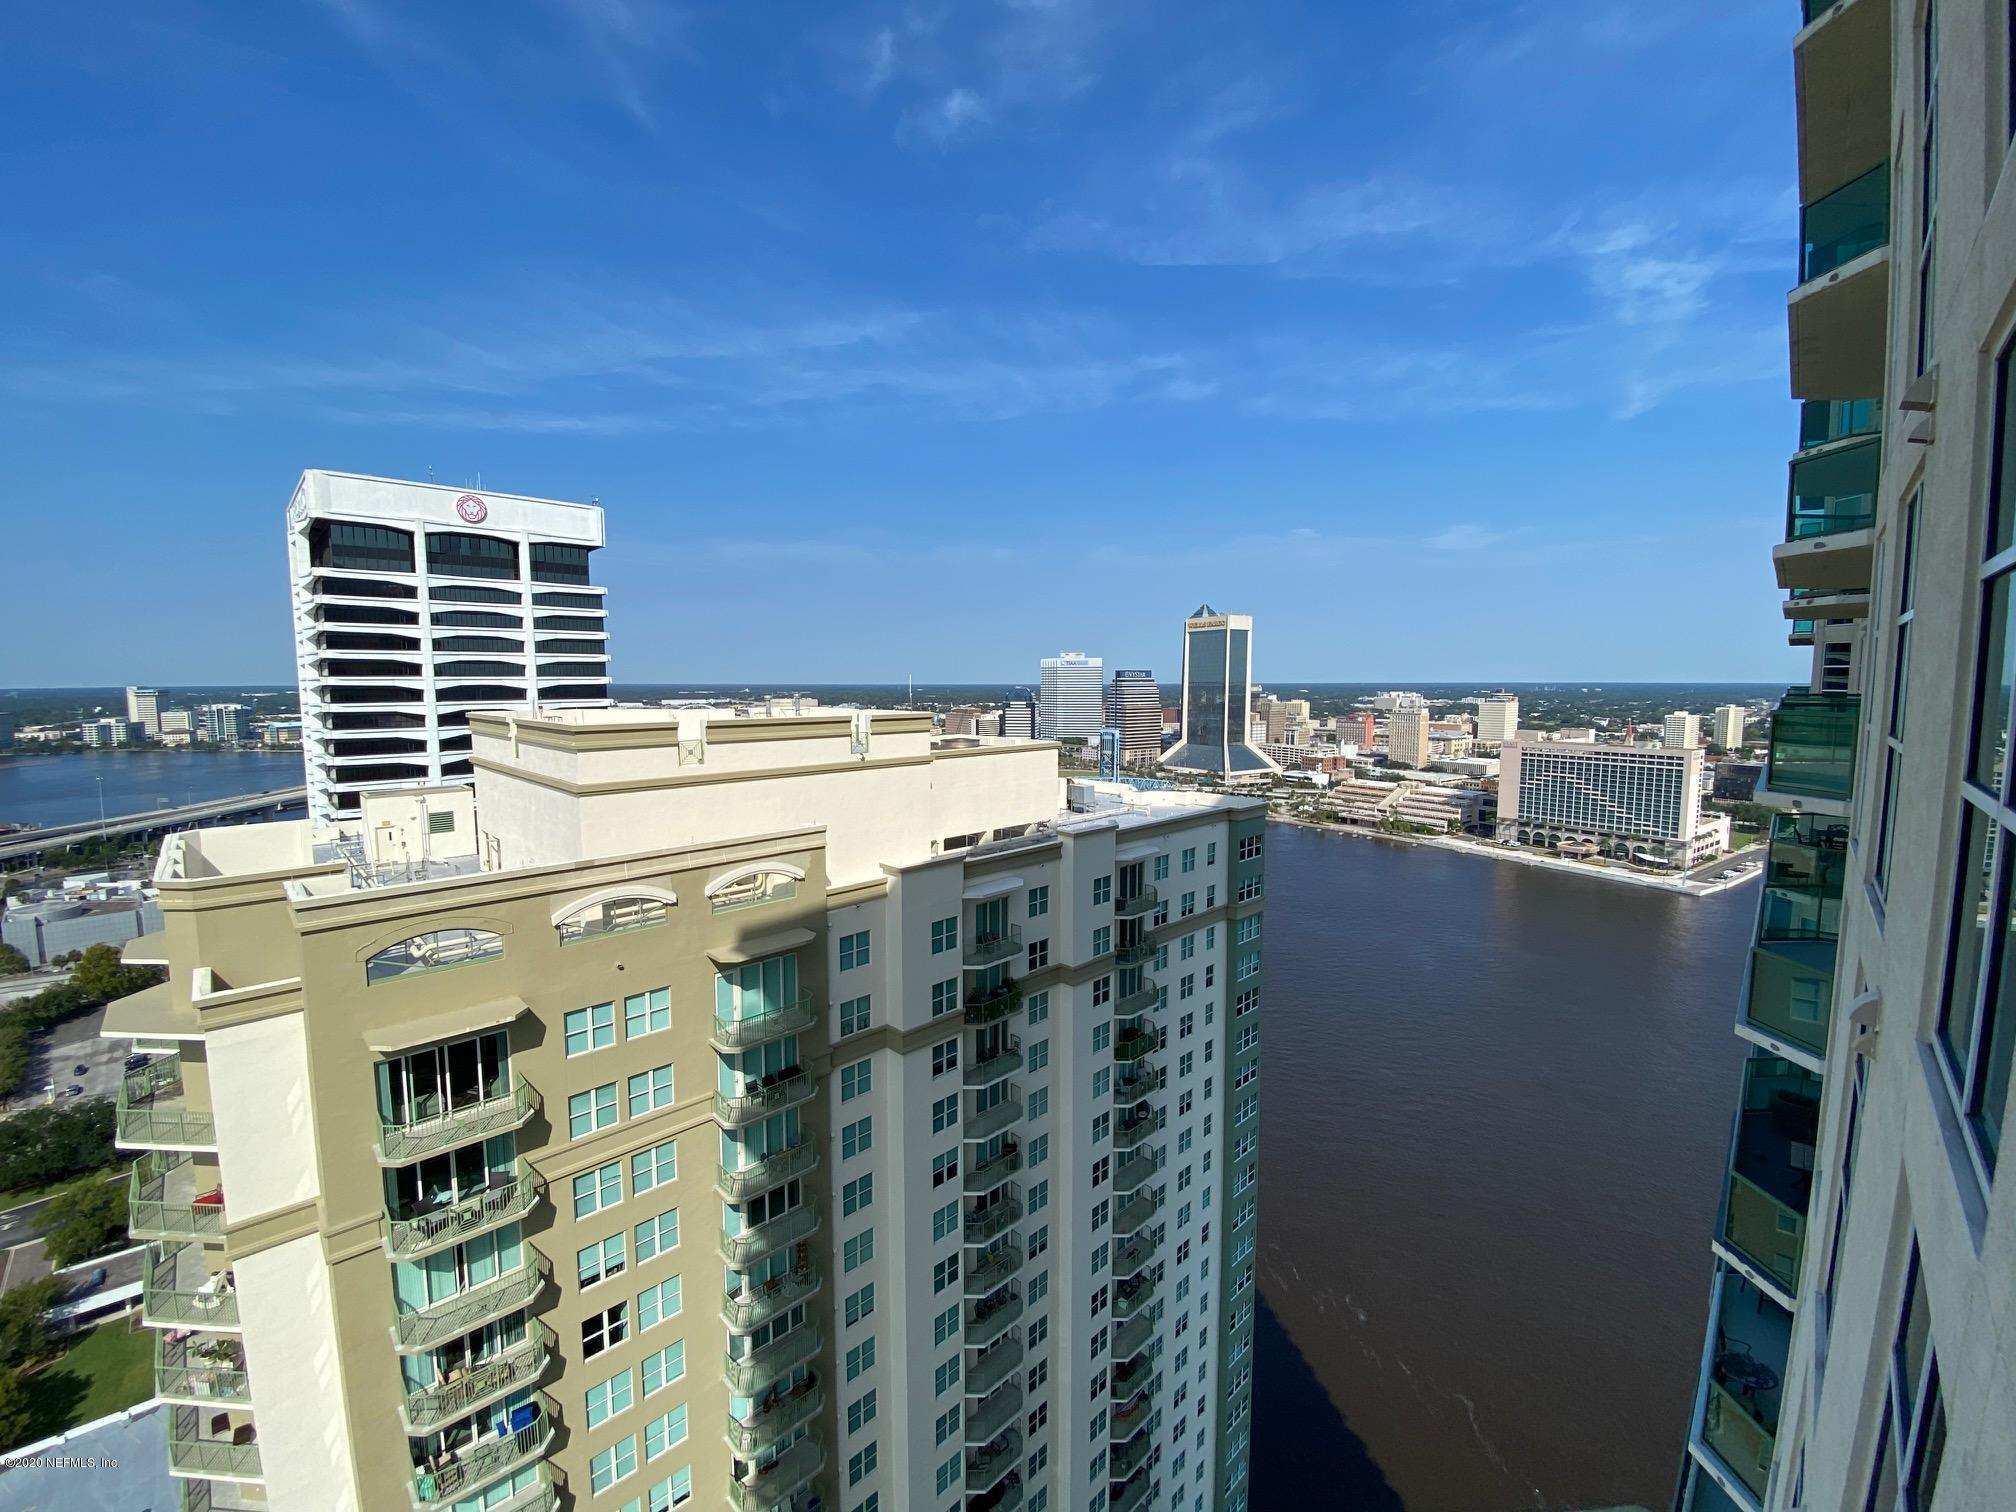 1431 RIVERPLACE, JACKSONVILLE, FLORIDA 32207, 2 Bedrooms Bedrooms, ,2 BathroomsBathrooms,Rental,For Rent,RIVERPLACE,1075994